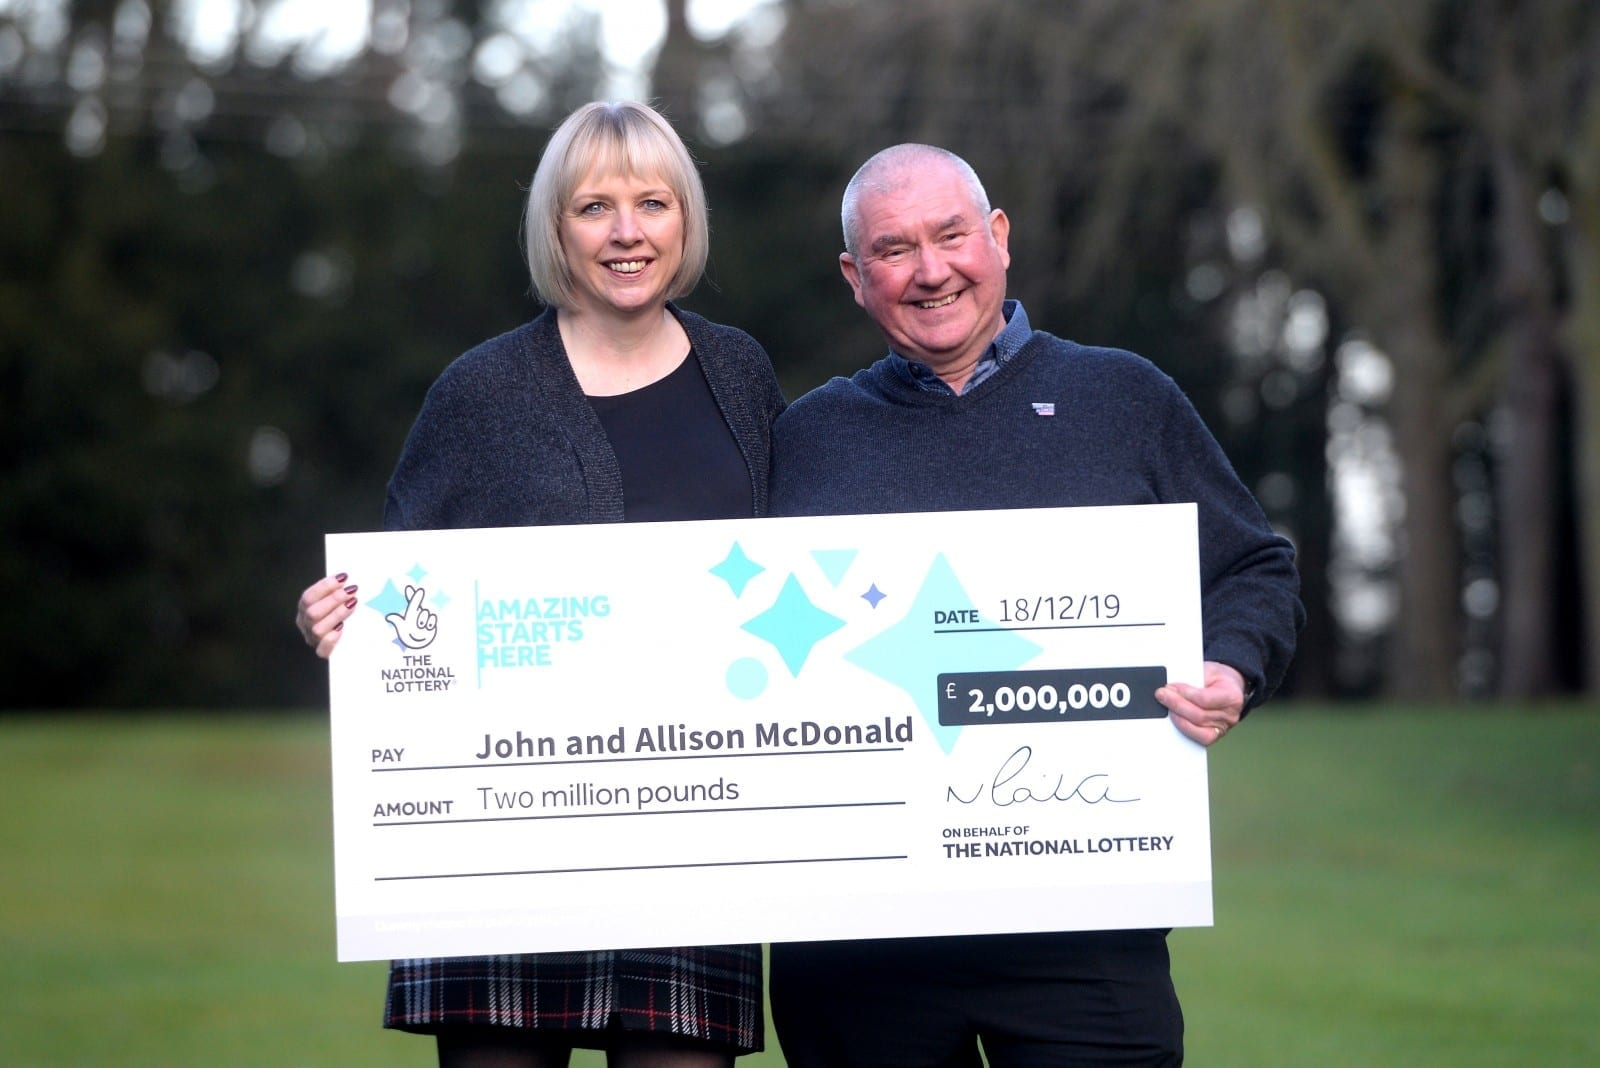 'All Of Our Lifelong Dreams Came True' – Winners Of £2m Lotto Jackpot Say The Real Celebrations Began When Their 15-Year-Old Son Was Declared Cancer-Free – Just Three Days Later